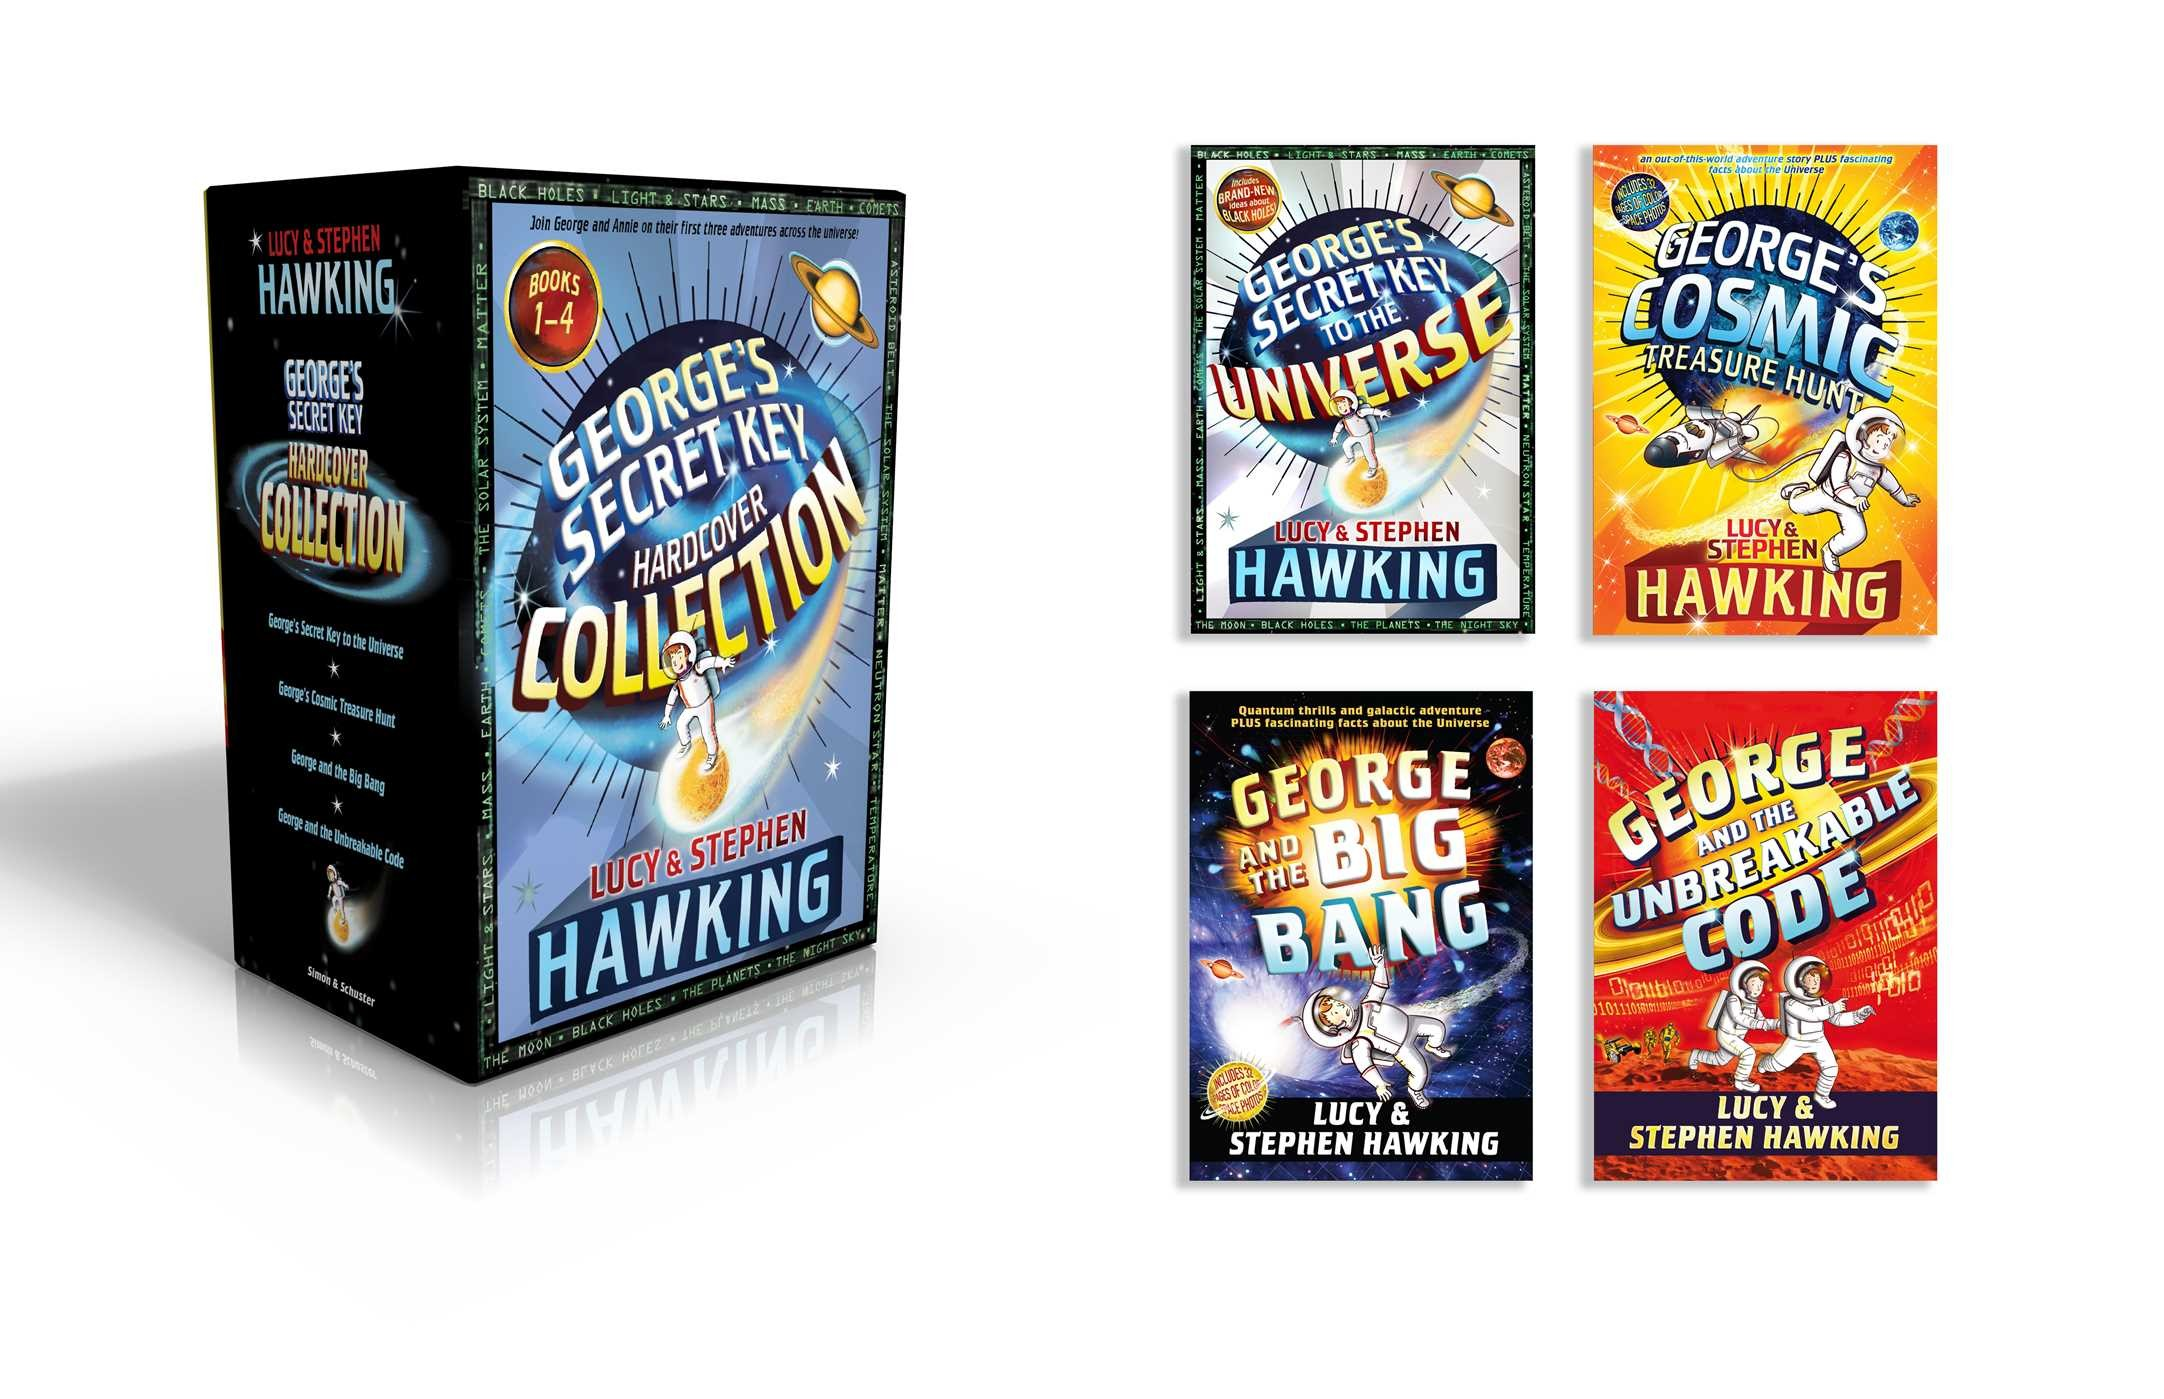 George S Secret Key Hardcover Collection